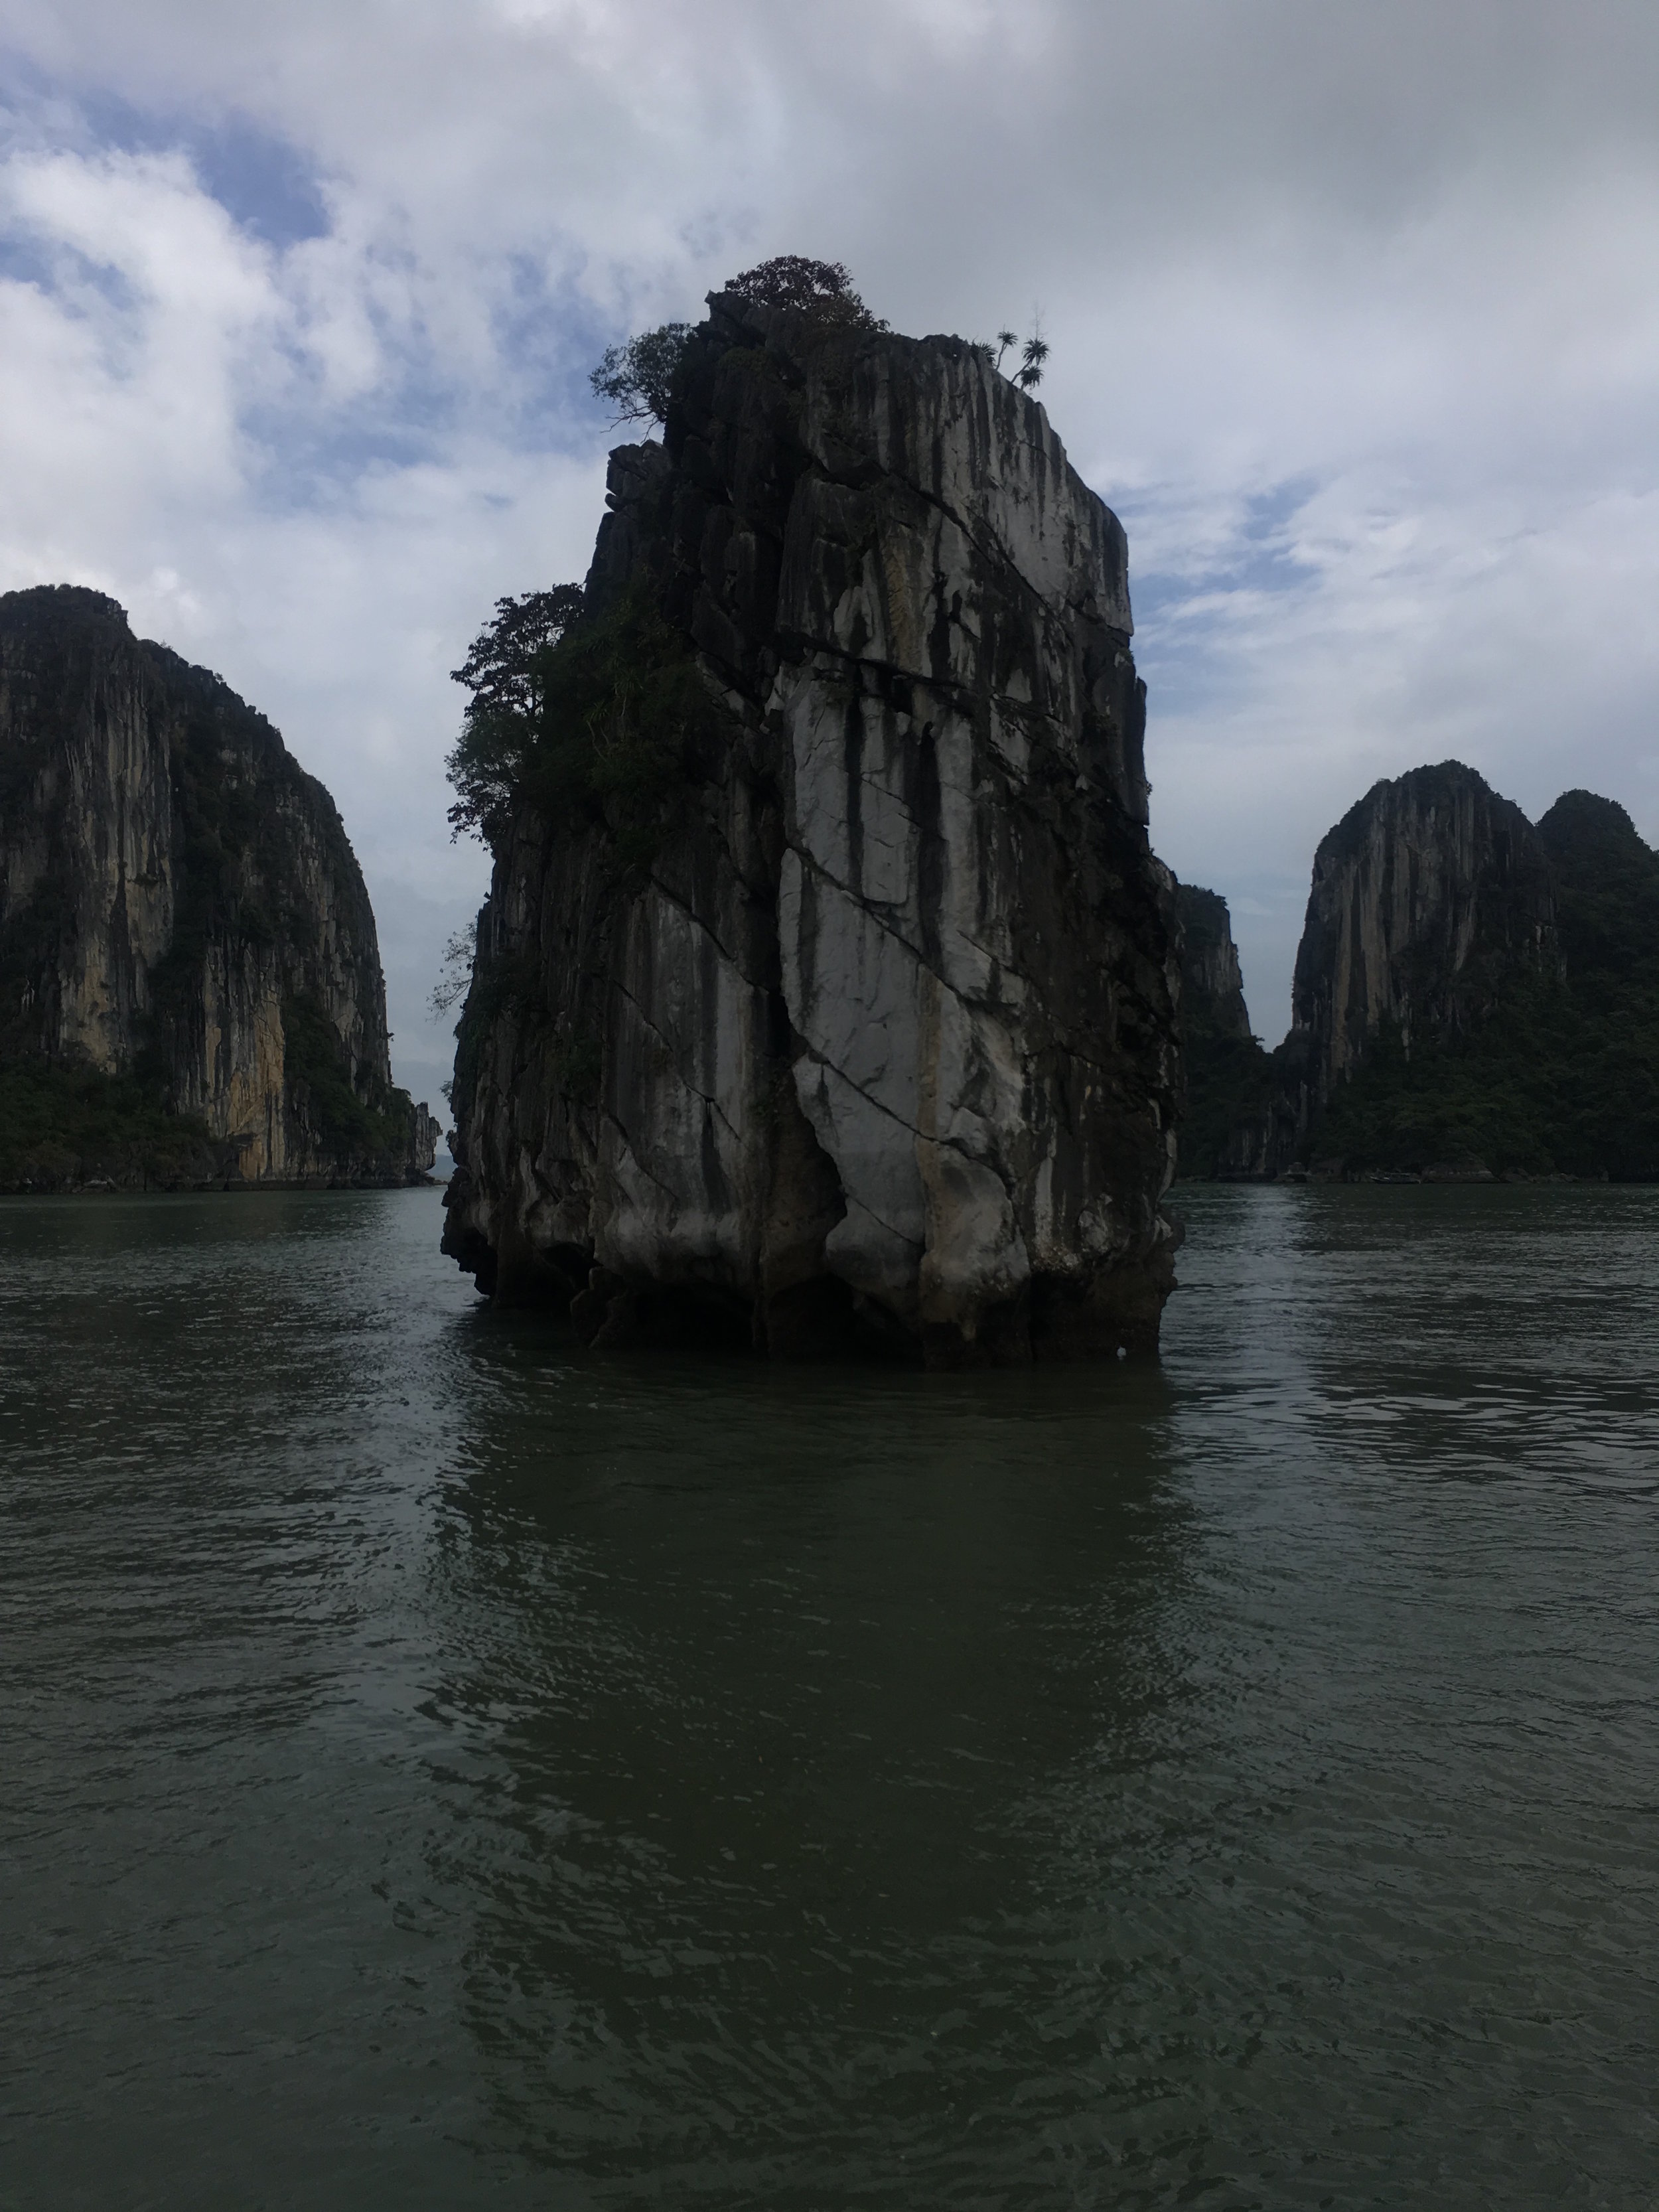 Ha Long Bay has an area of around 1,553 km2, including 1,960–2,000 islets, most of which are limestone